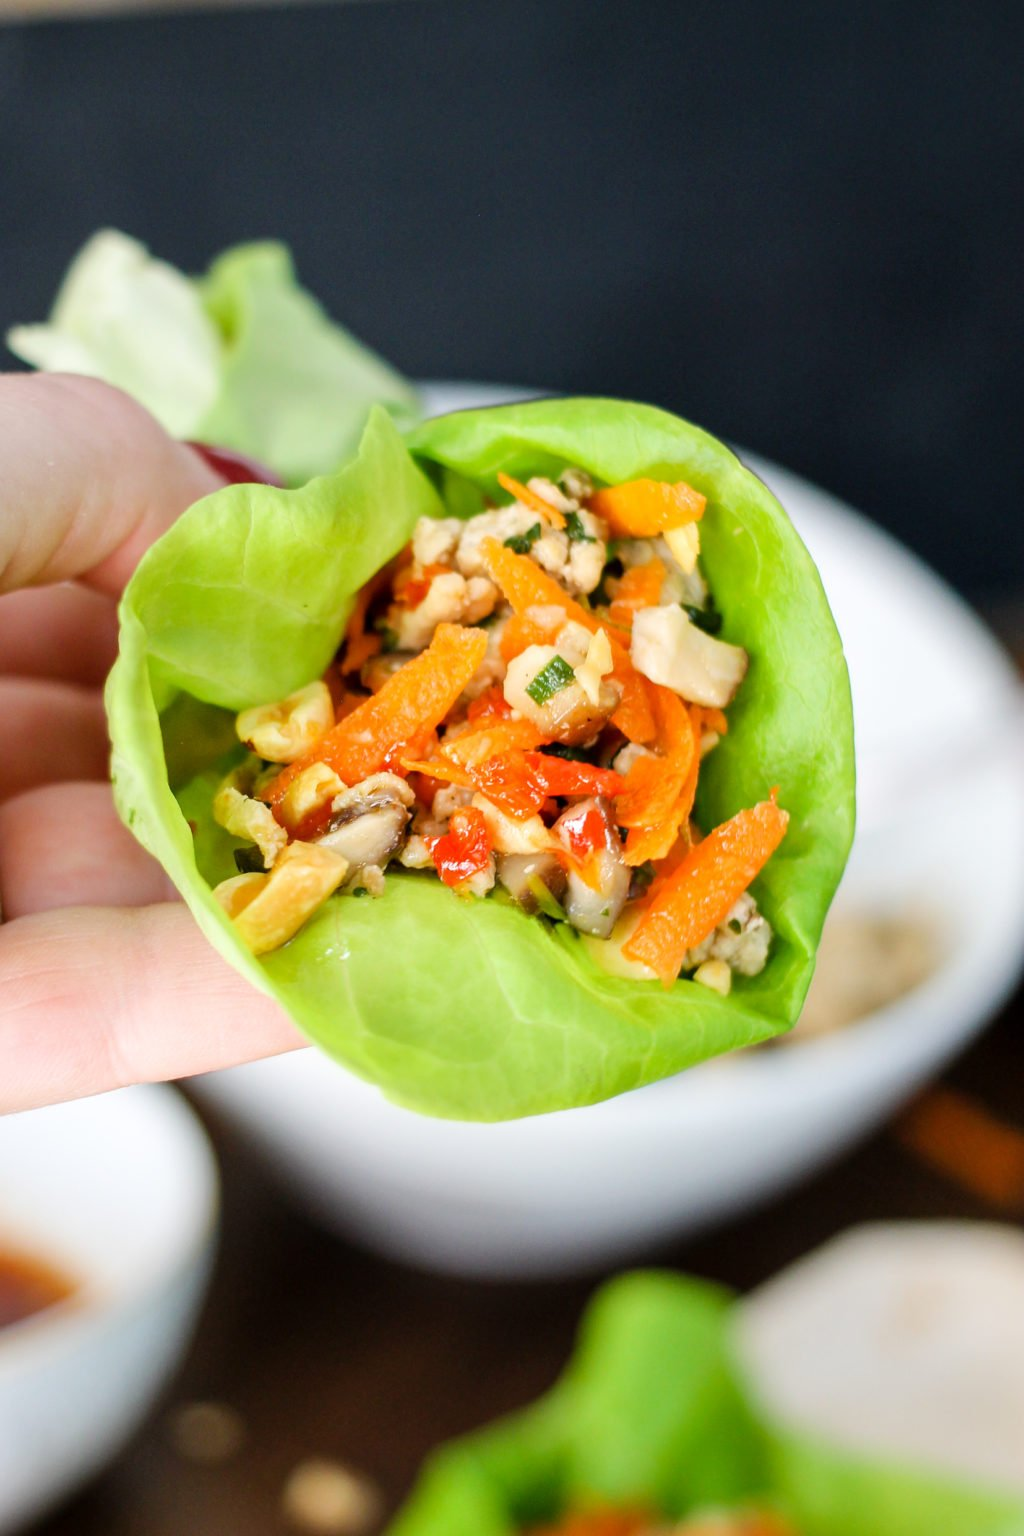 Asian Chicken Lettuce Wraps are super easy to make and taste better than the popular PF Chang's version. This healthy recipe packs all the flavor!